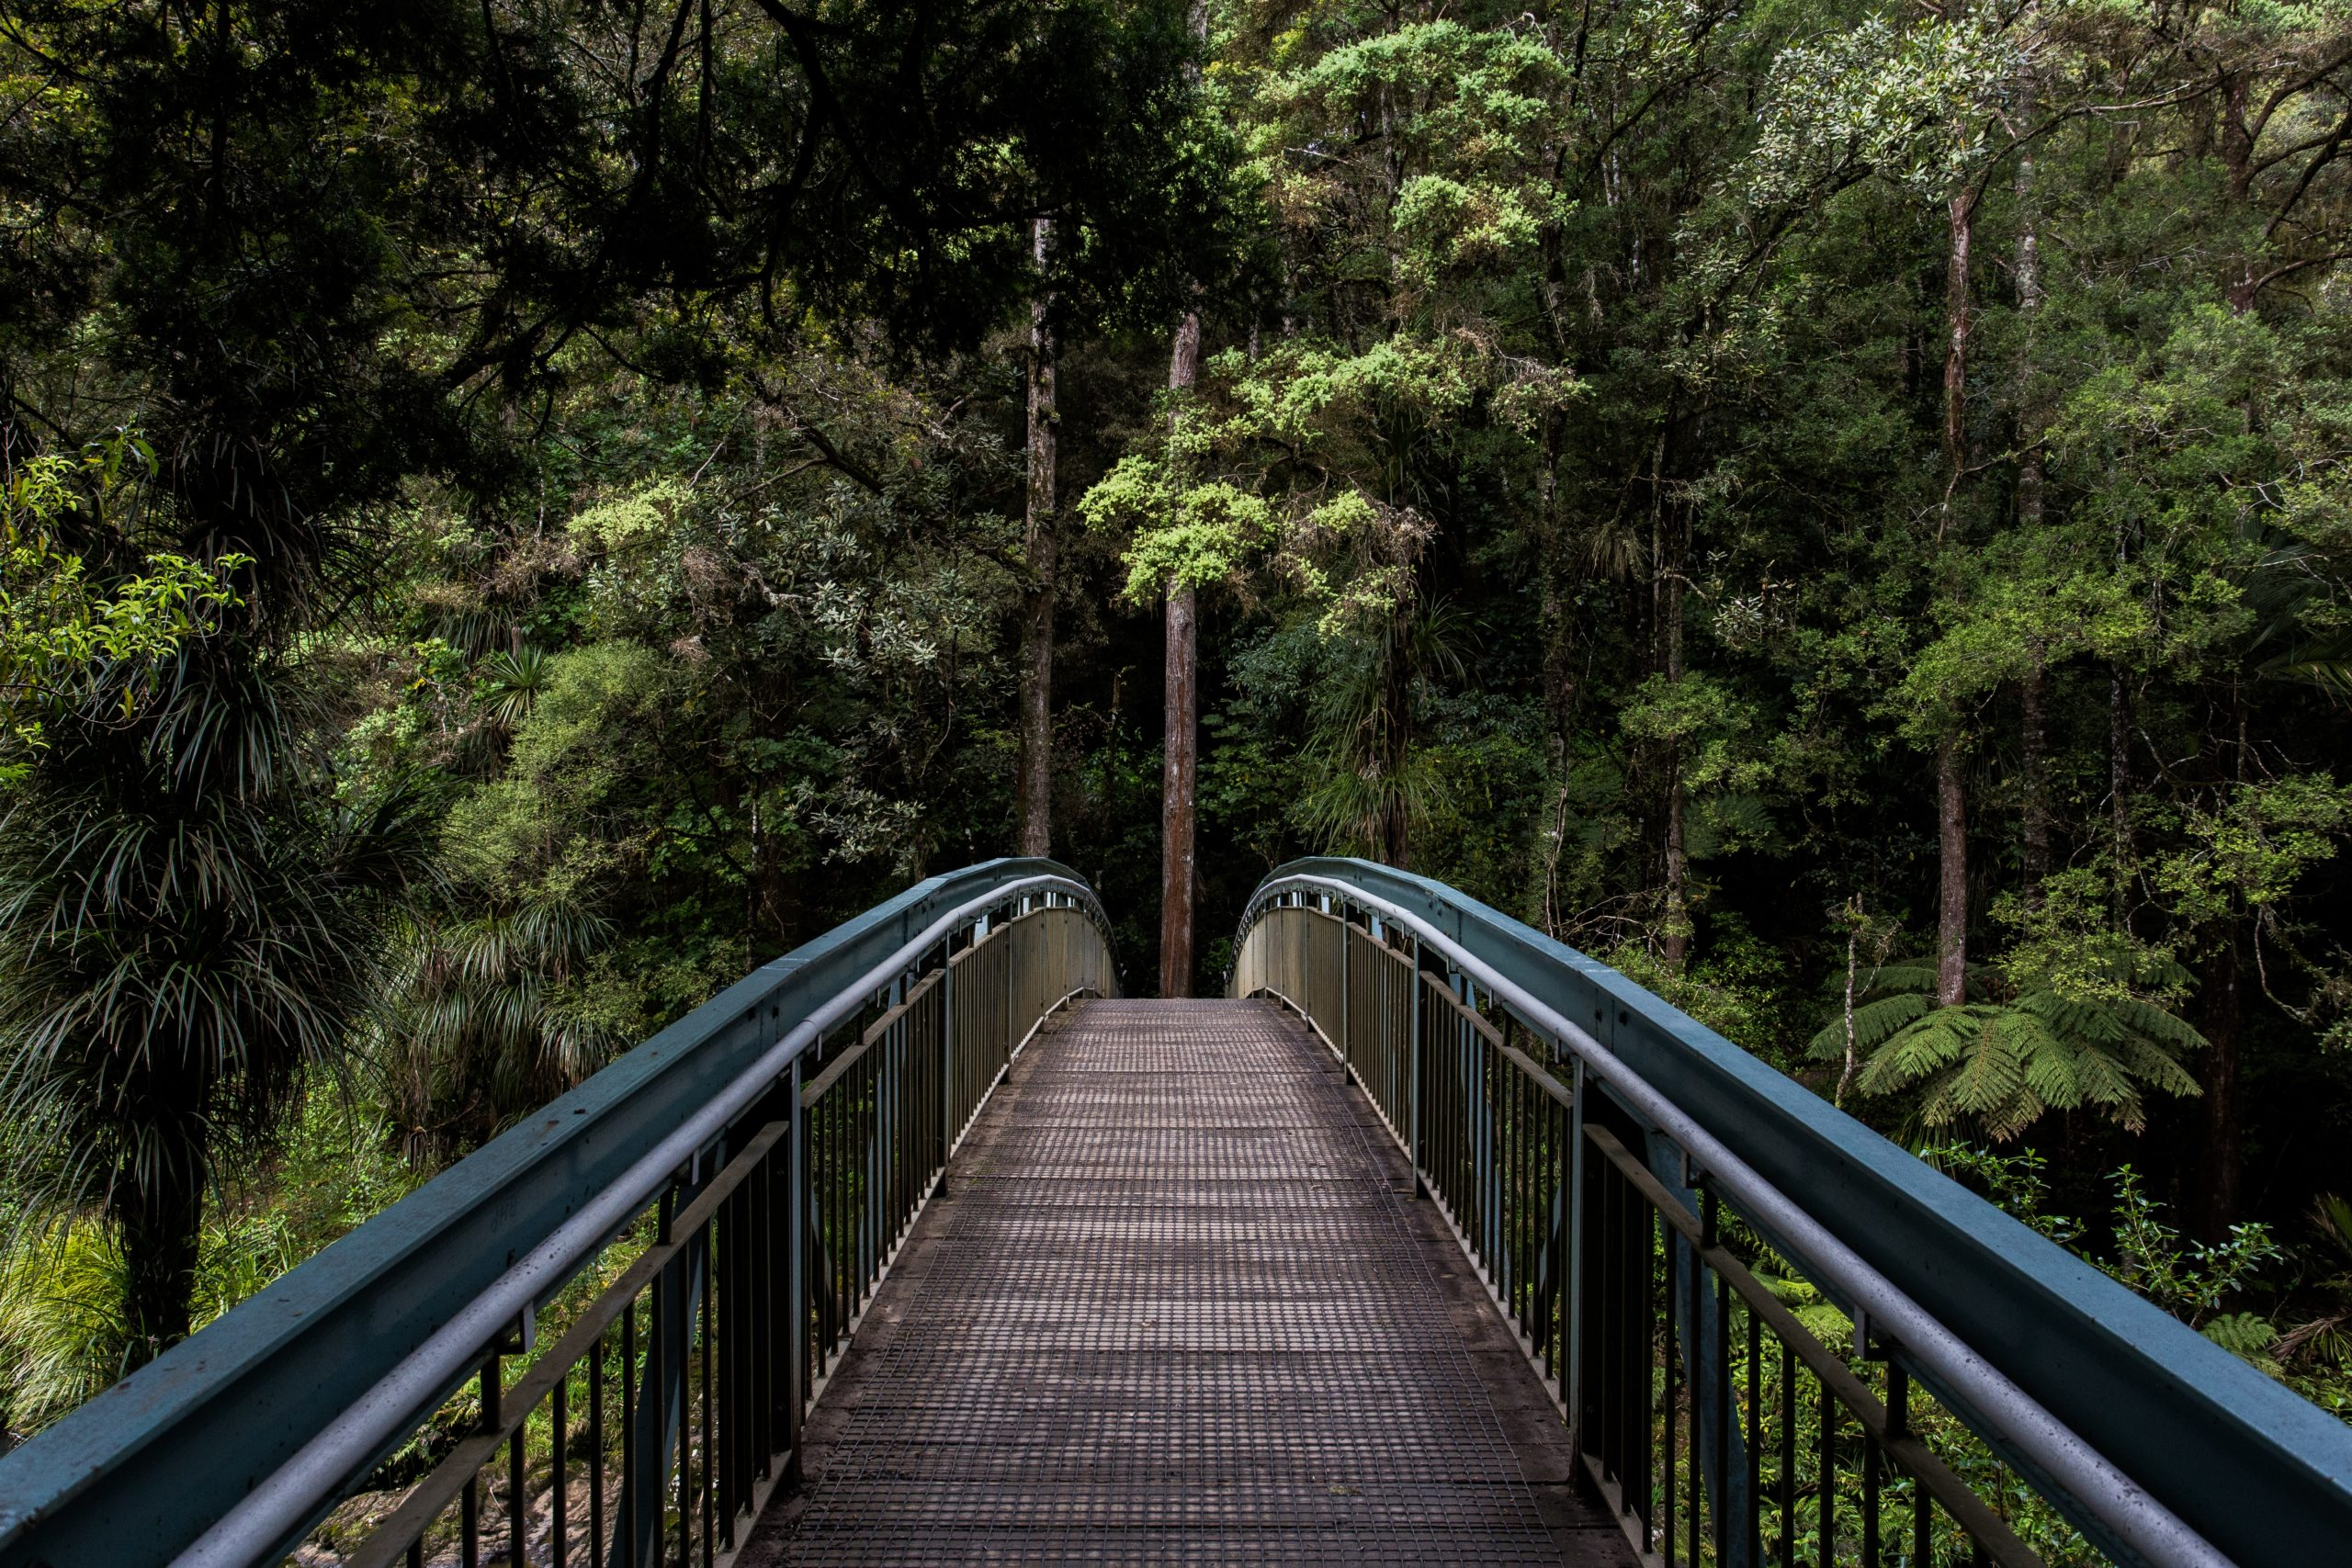 bridge going into a pine forest